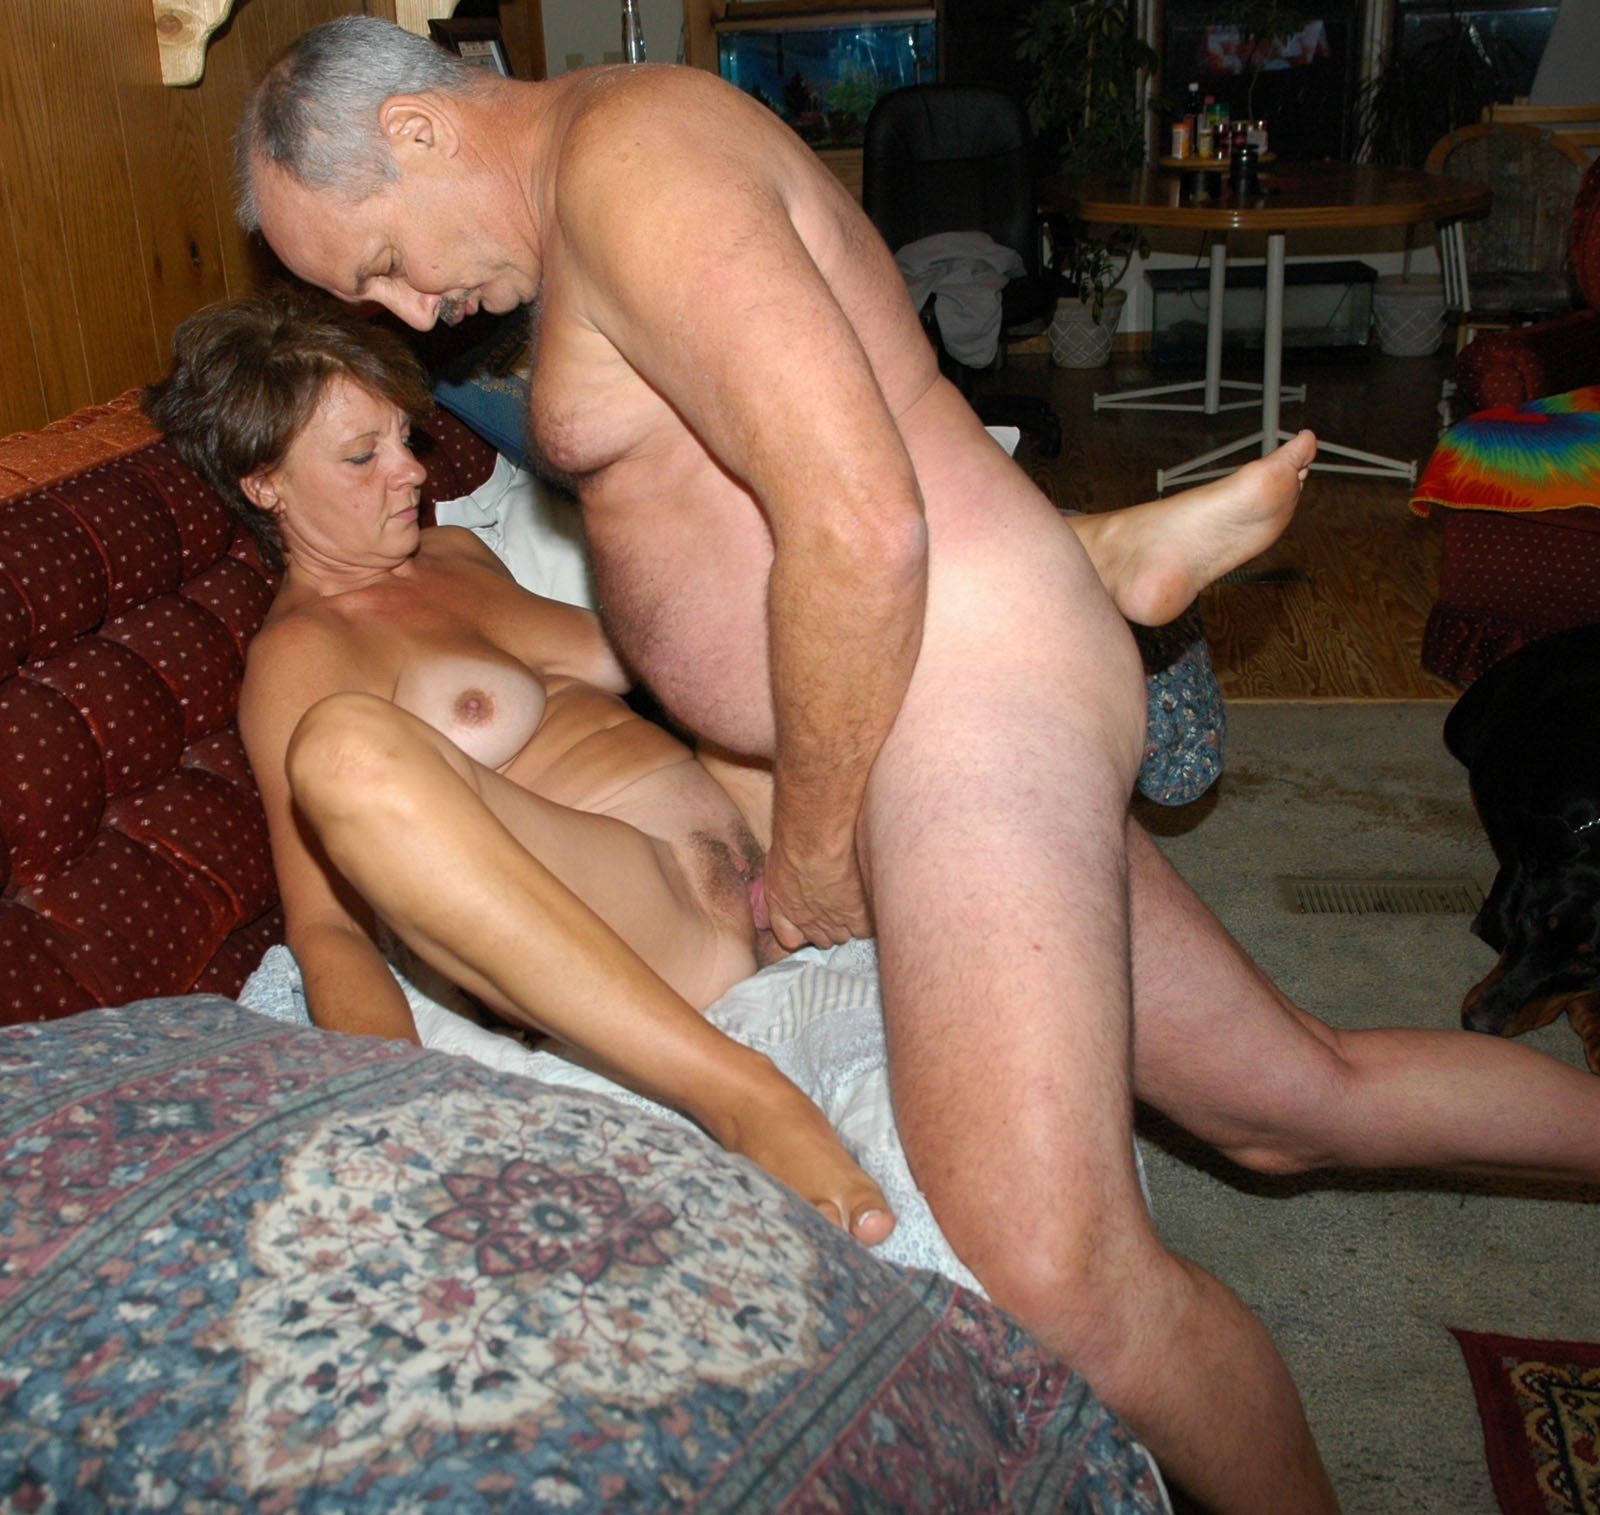 Ghetto Gay Couple Having Some Hard Fuck